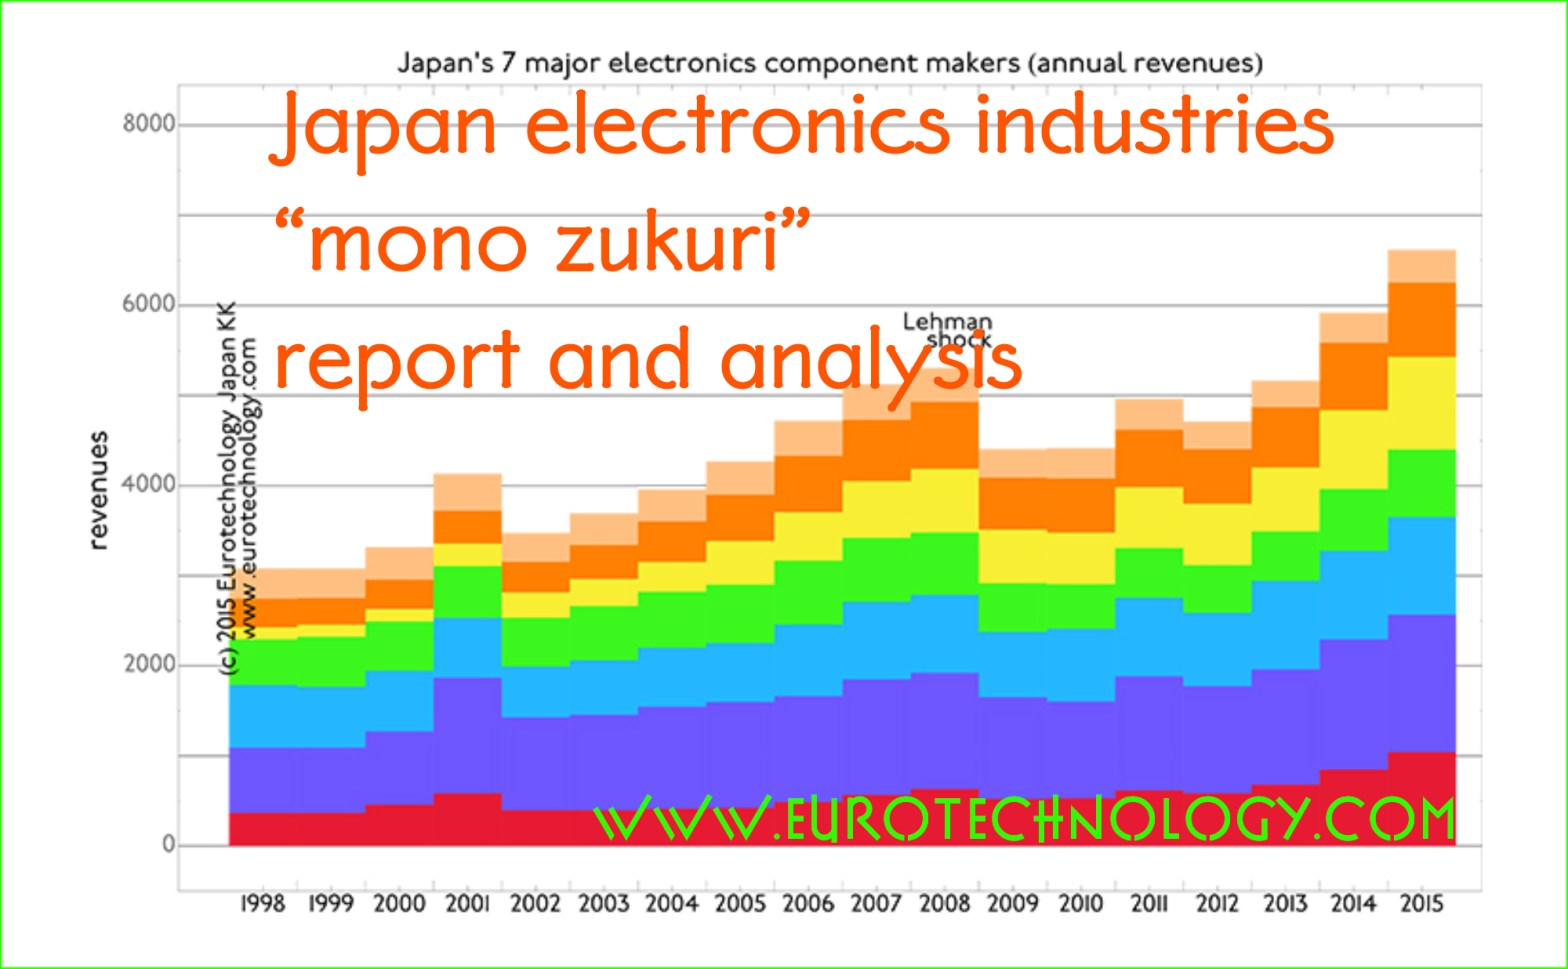 eurotechnology report on Japan's electronics industries - mono zukuri